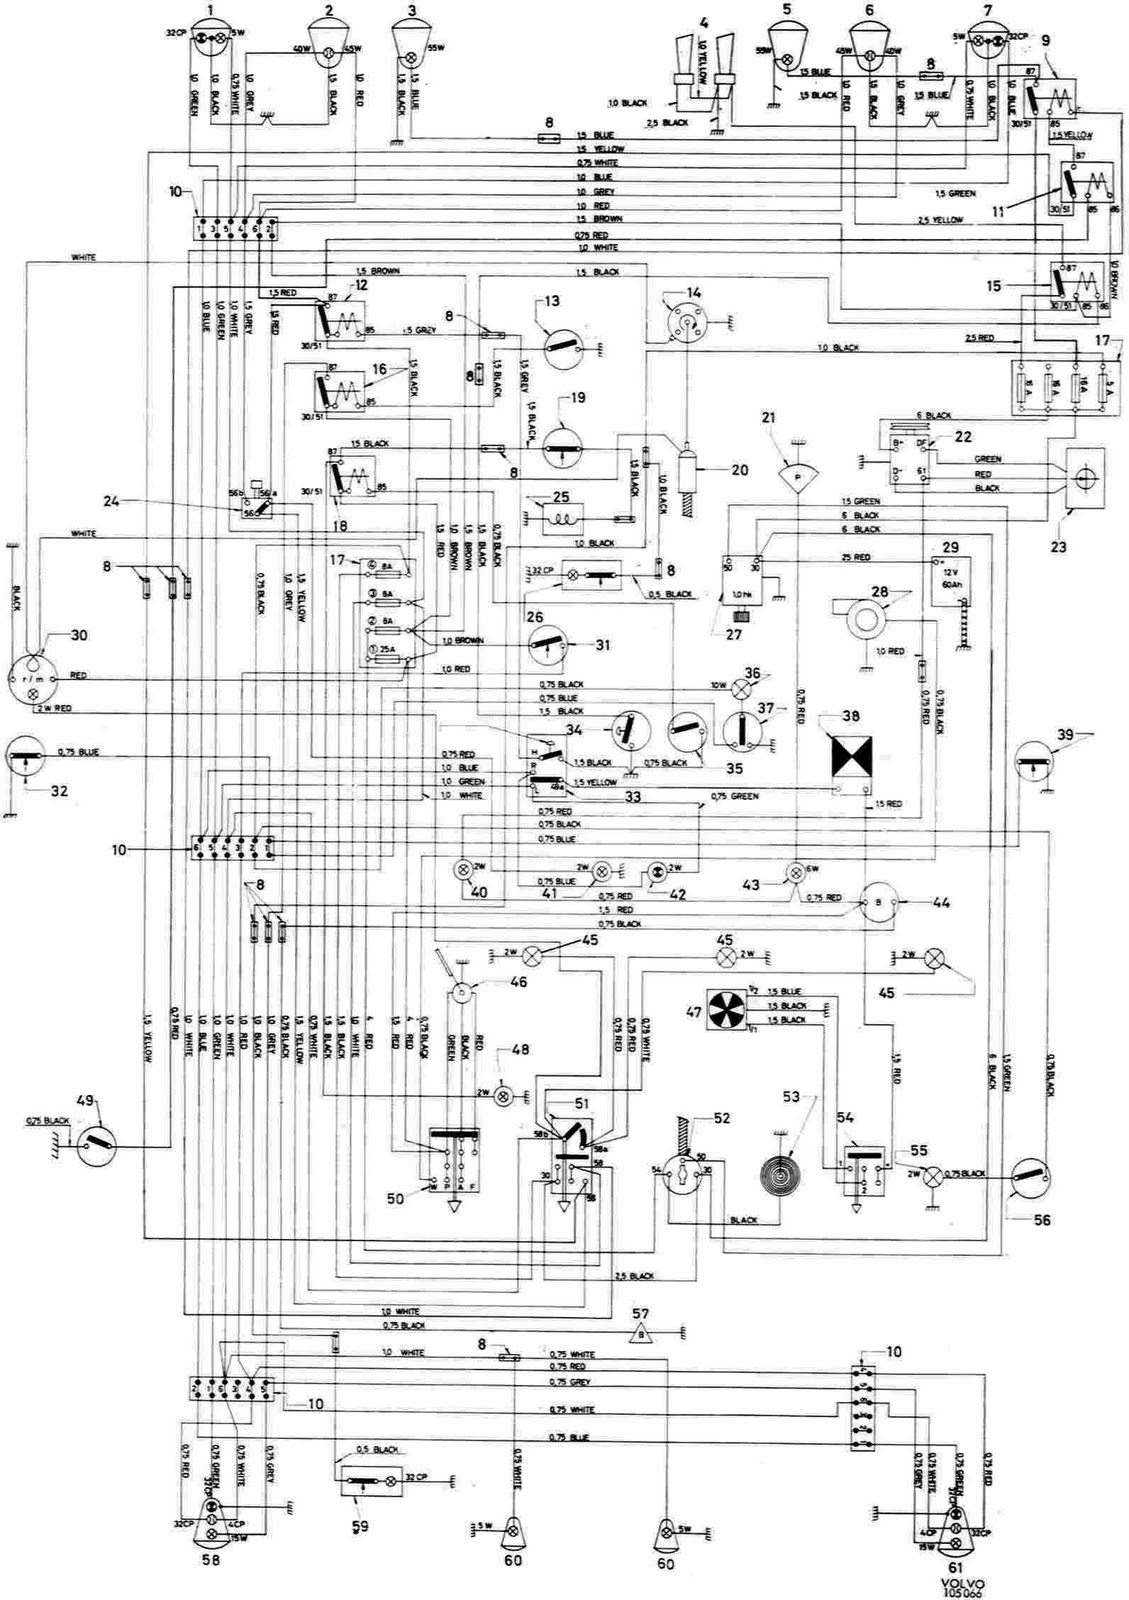 Volvo 123GT Complete Electrical Wiring Diagram | All about Wiring Diagrams